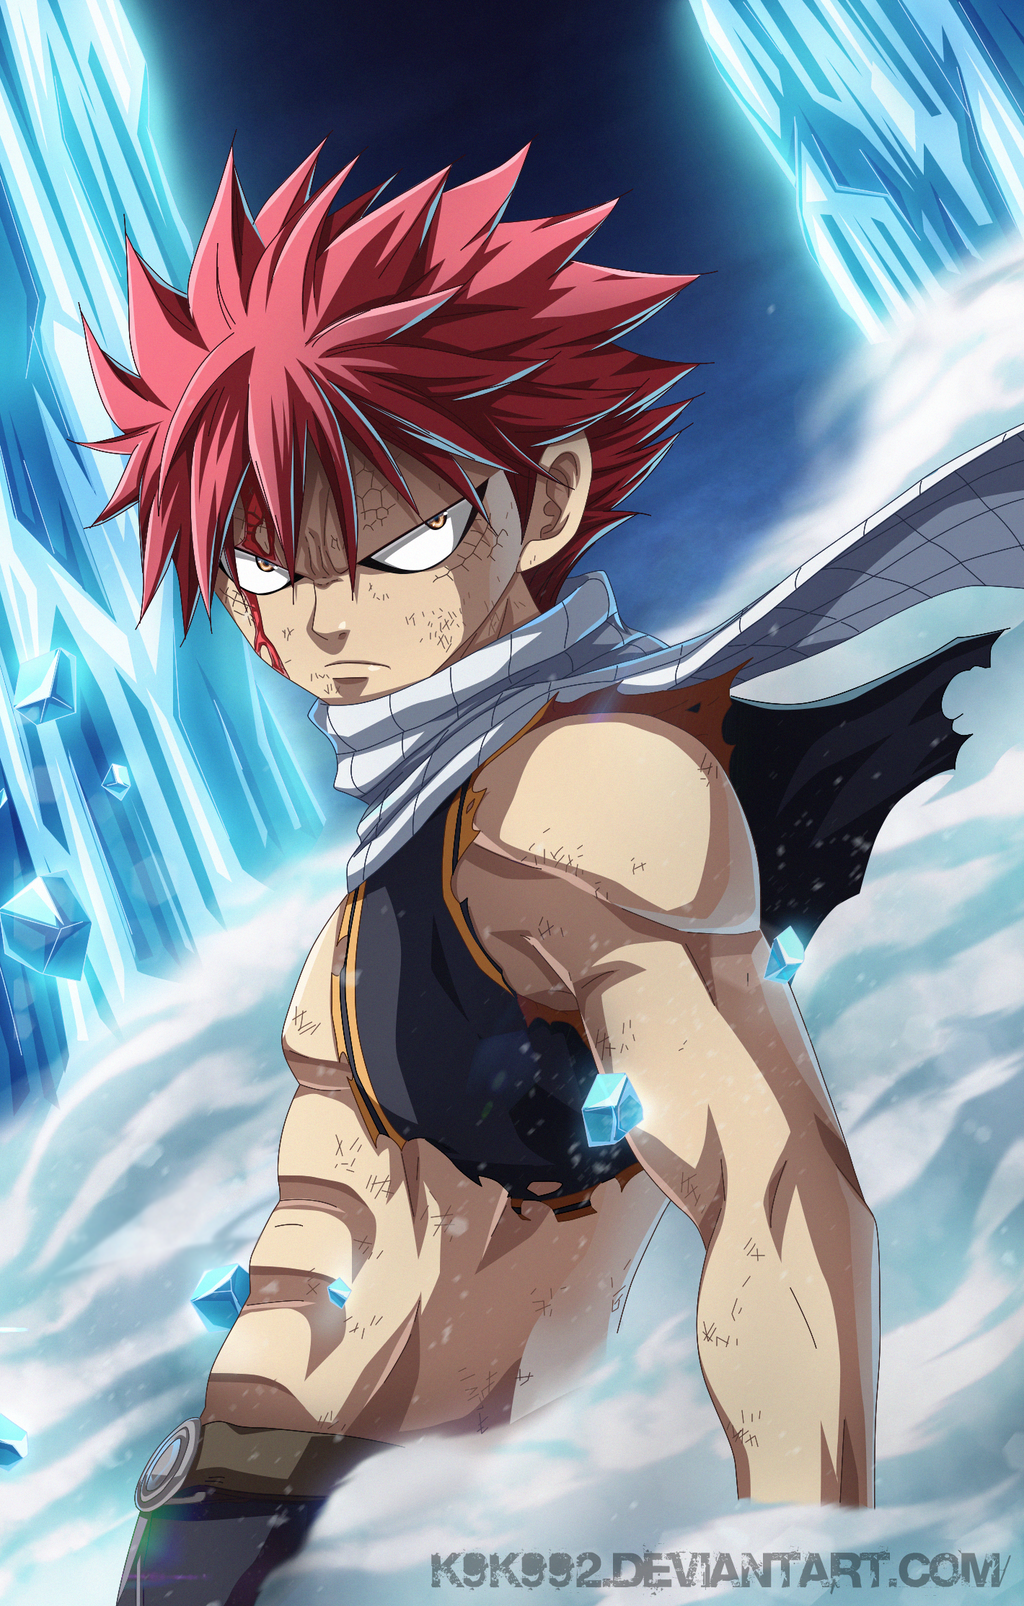 Natsu Dragon Force - Fairy Tail 98 by k9k992 on DeviantArt